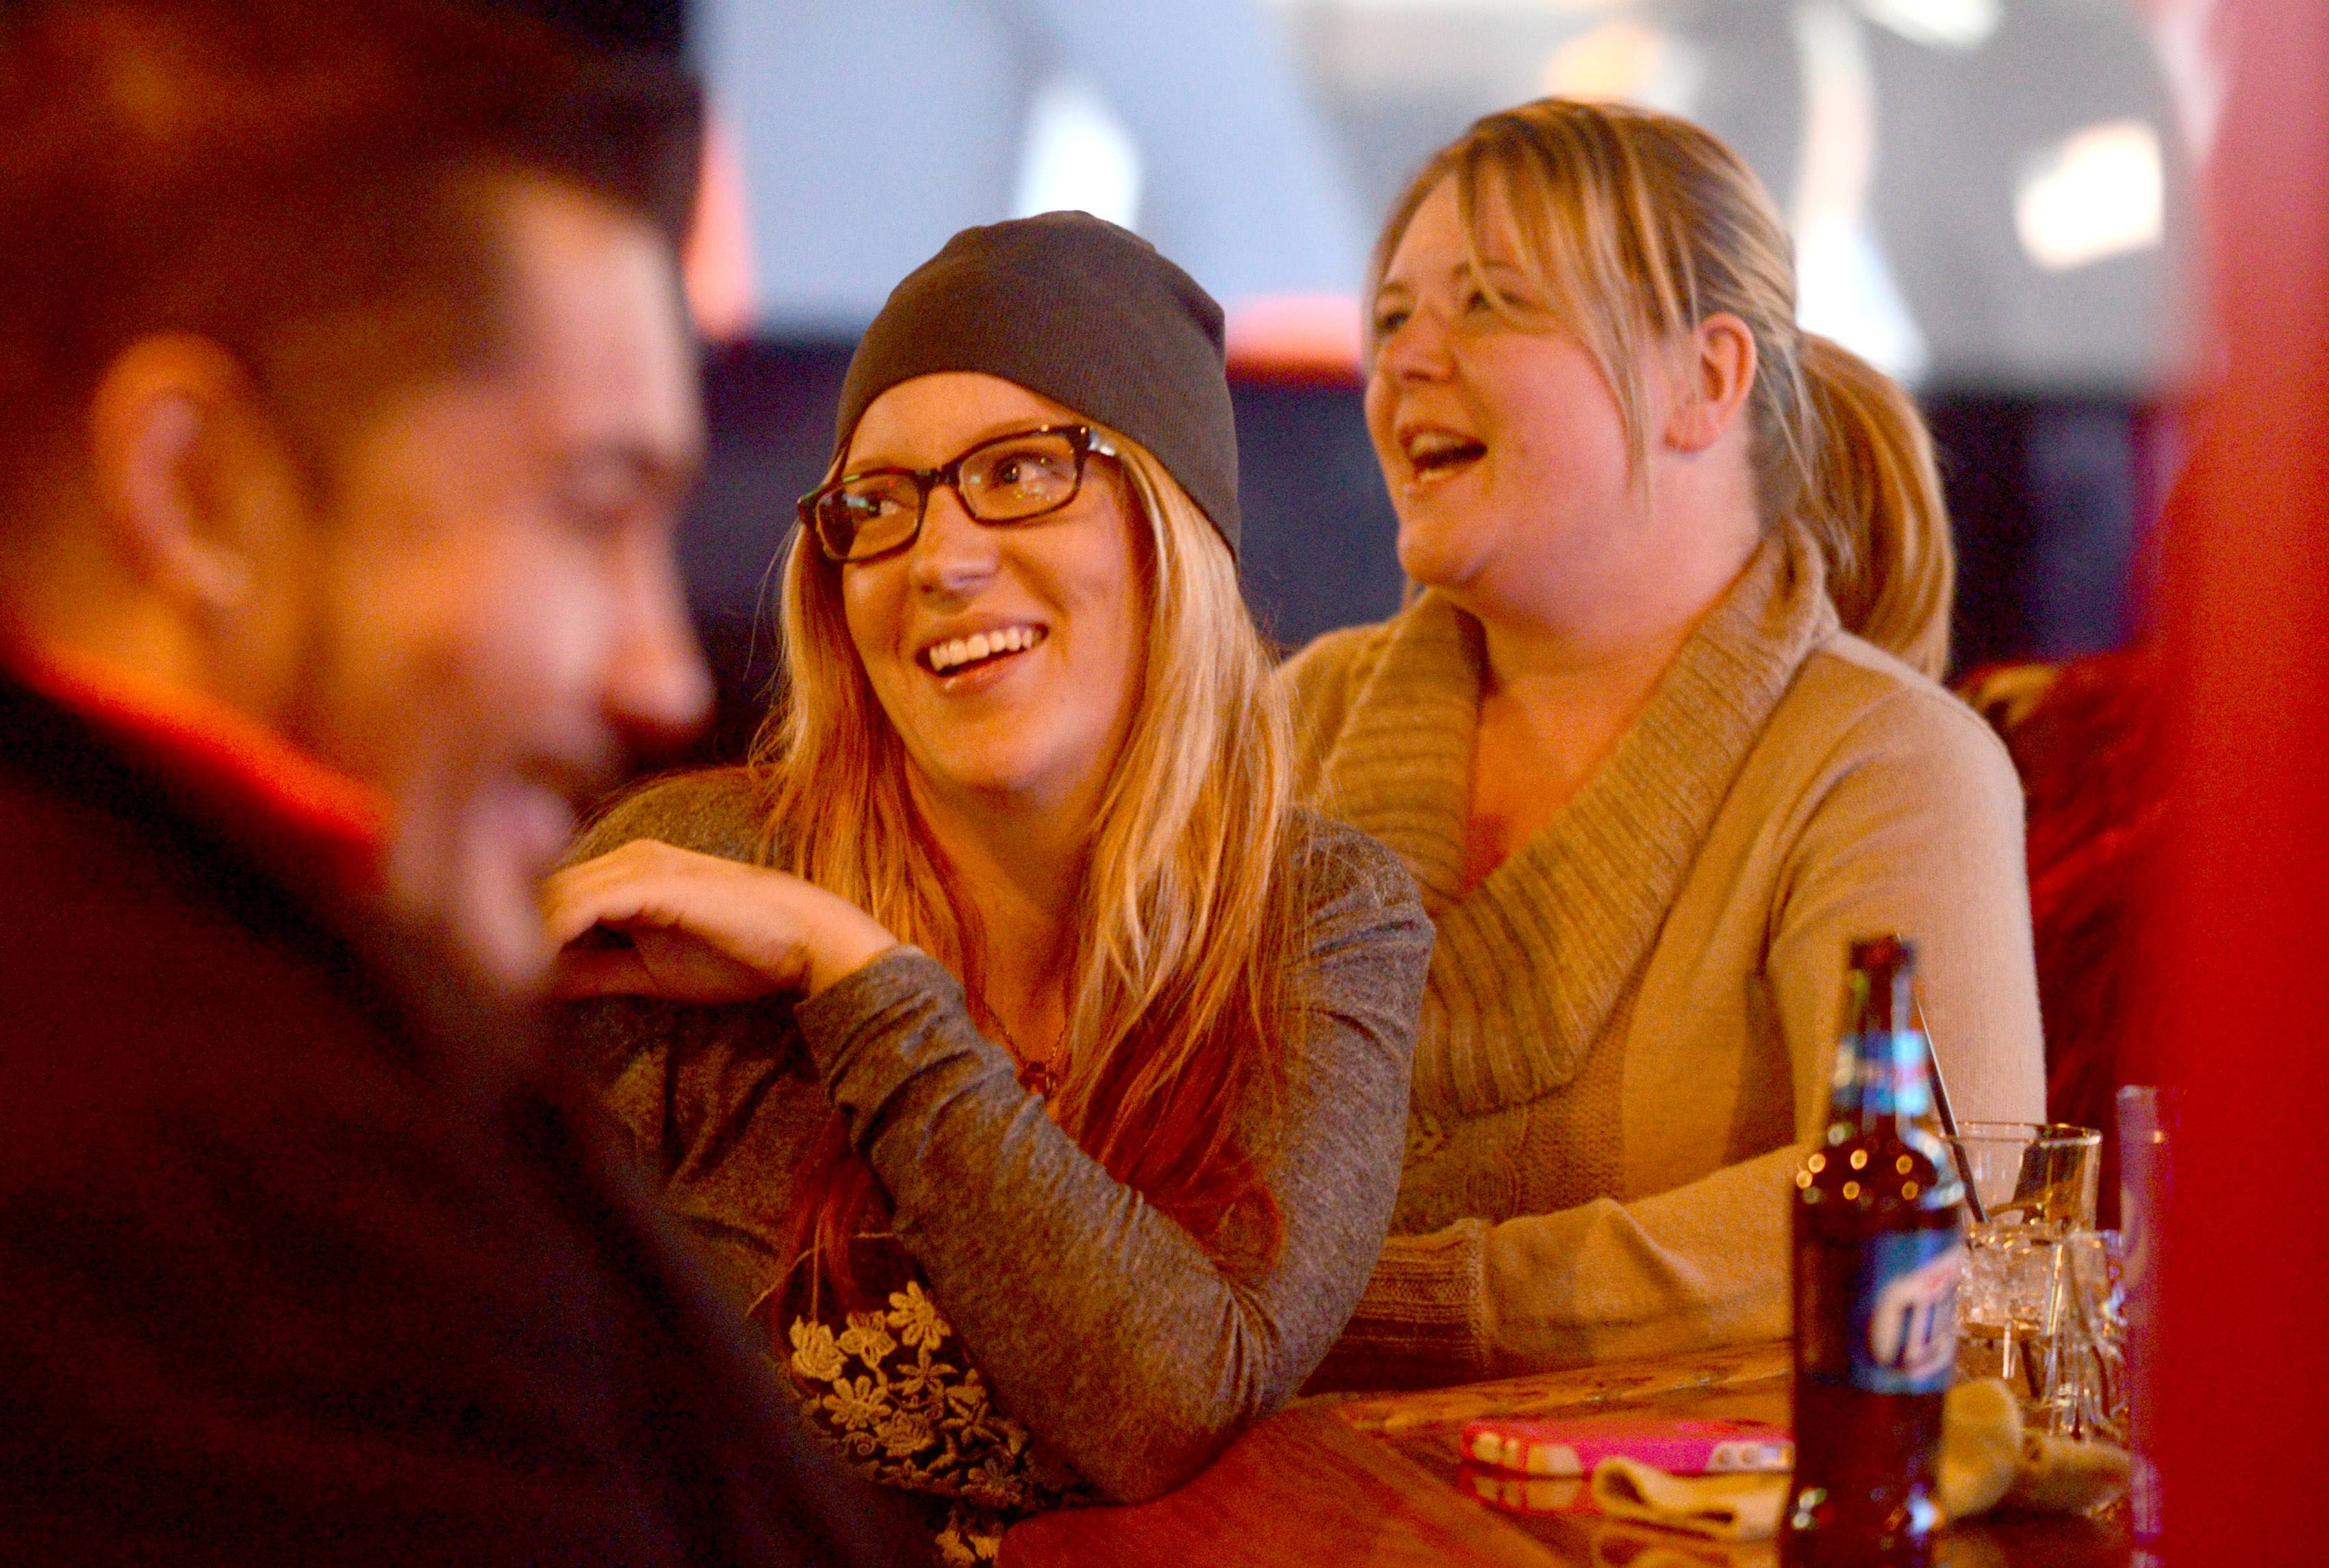 Samantha Reuter, center, of Chicago, shares a laugh with Jill Ramirez, right, of Hoffman Estates at M T Barrels in Schaumburg.